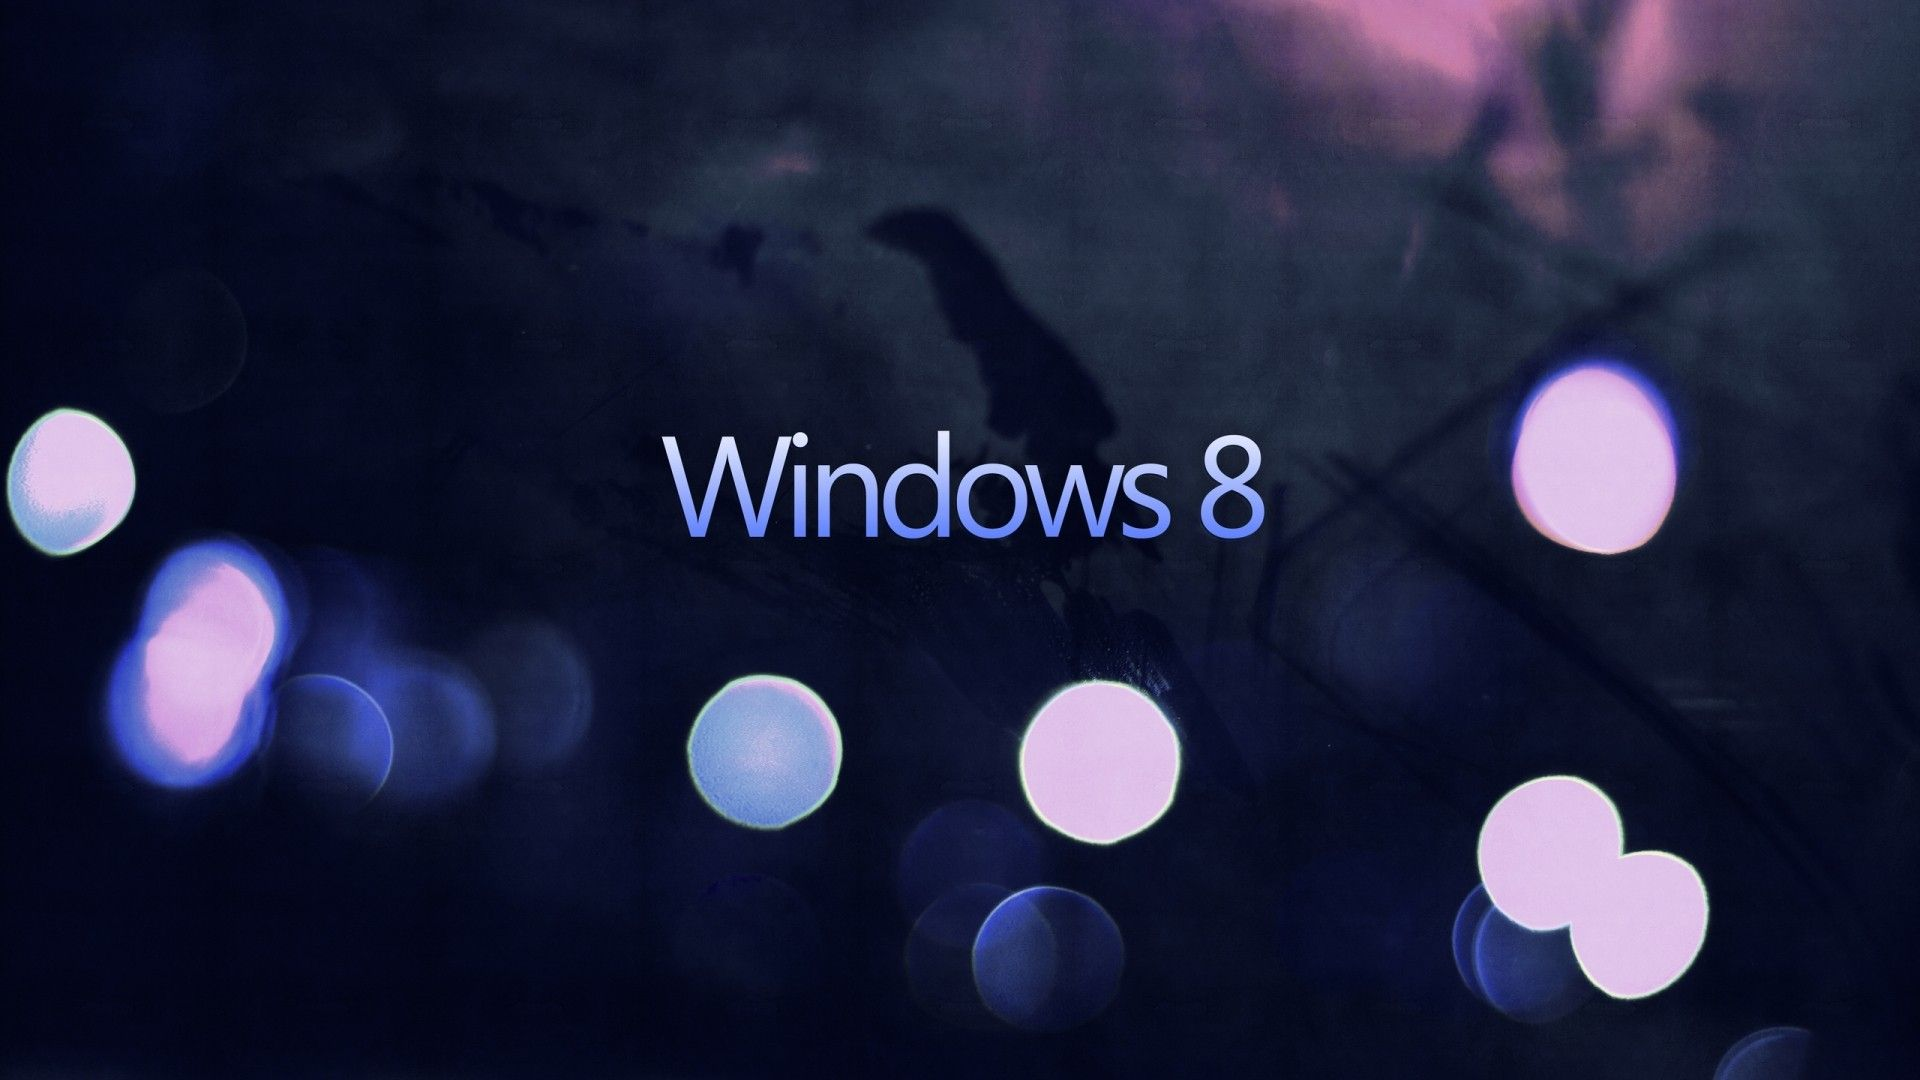 Best Windows 8 Background 2013 HD Wallpaper